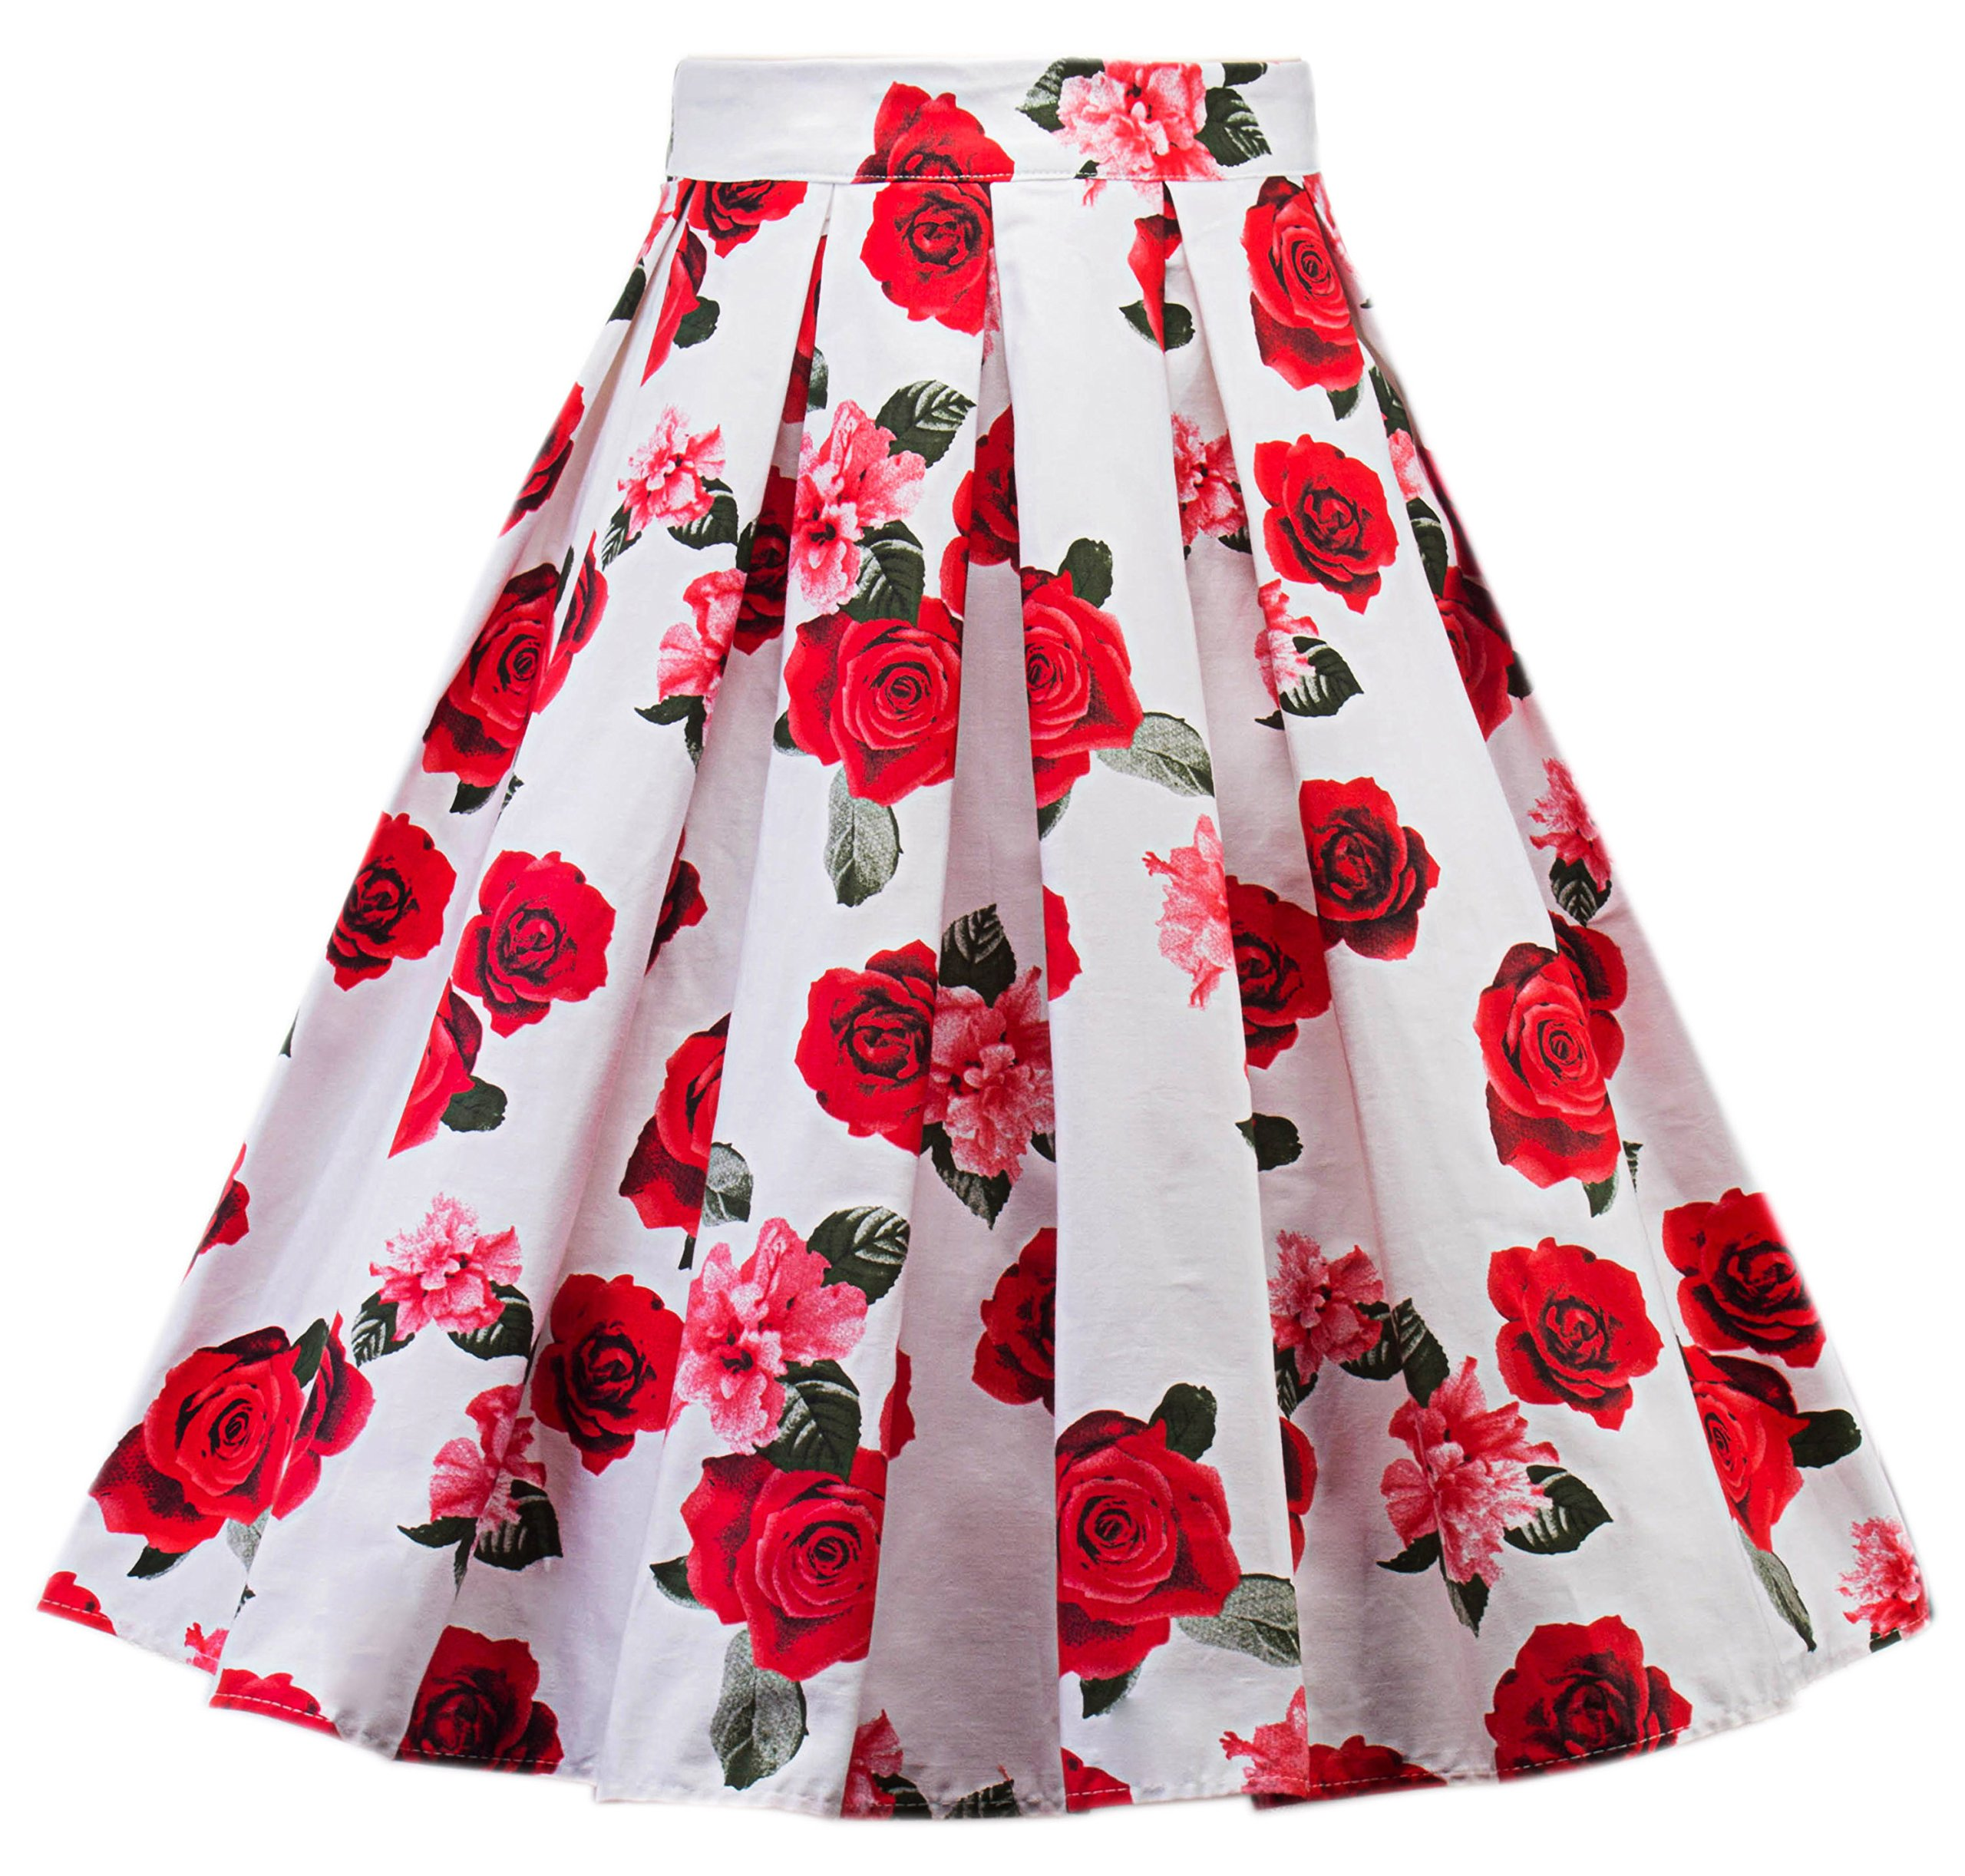 TINTAO Women's A-Line Floral Printed Pleated Flared Party Midi Skirts Dr05 (Floral, X-Large)